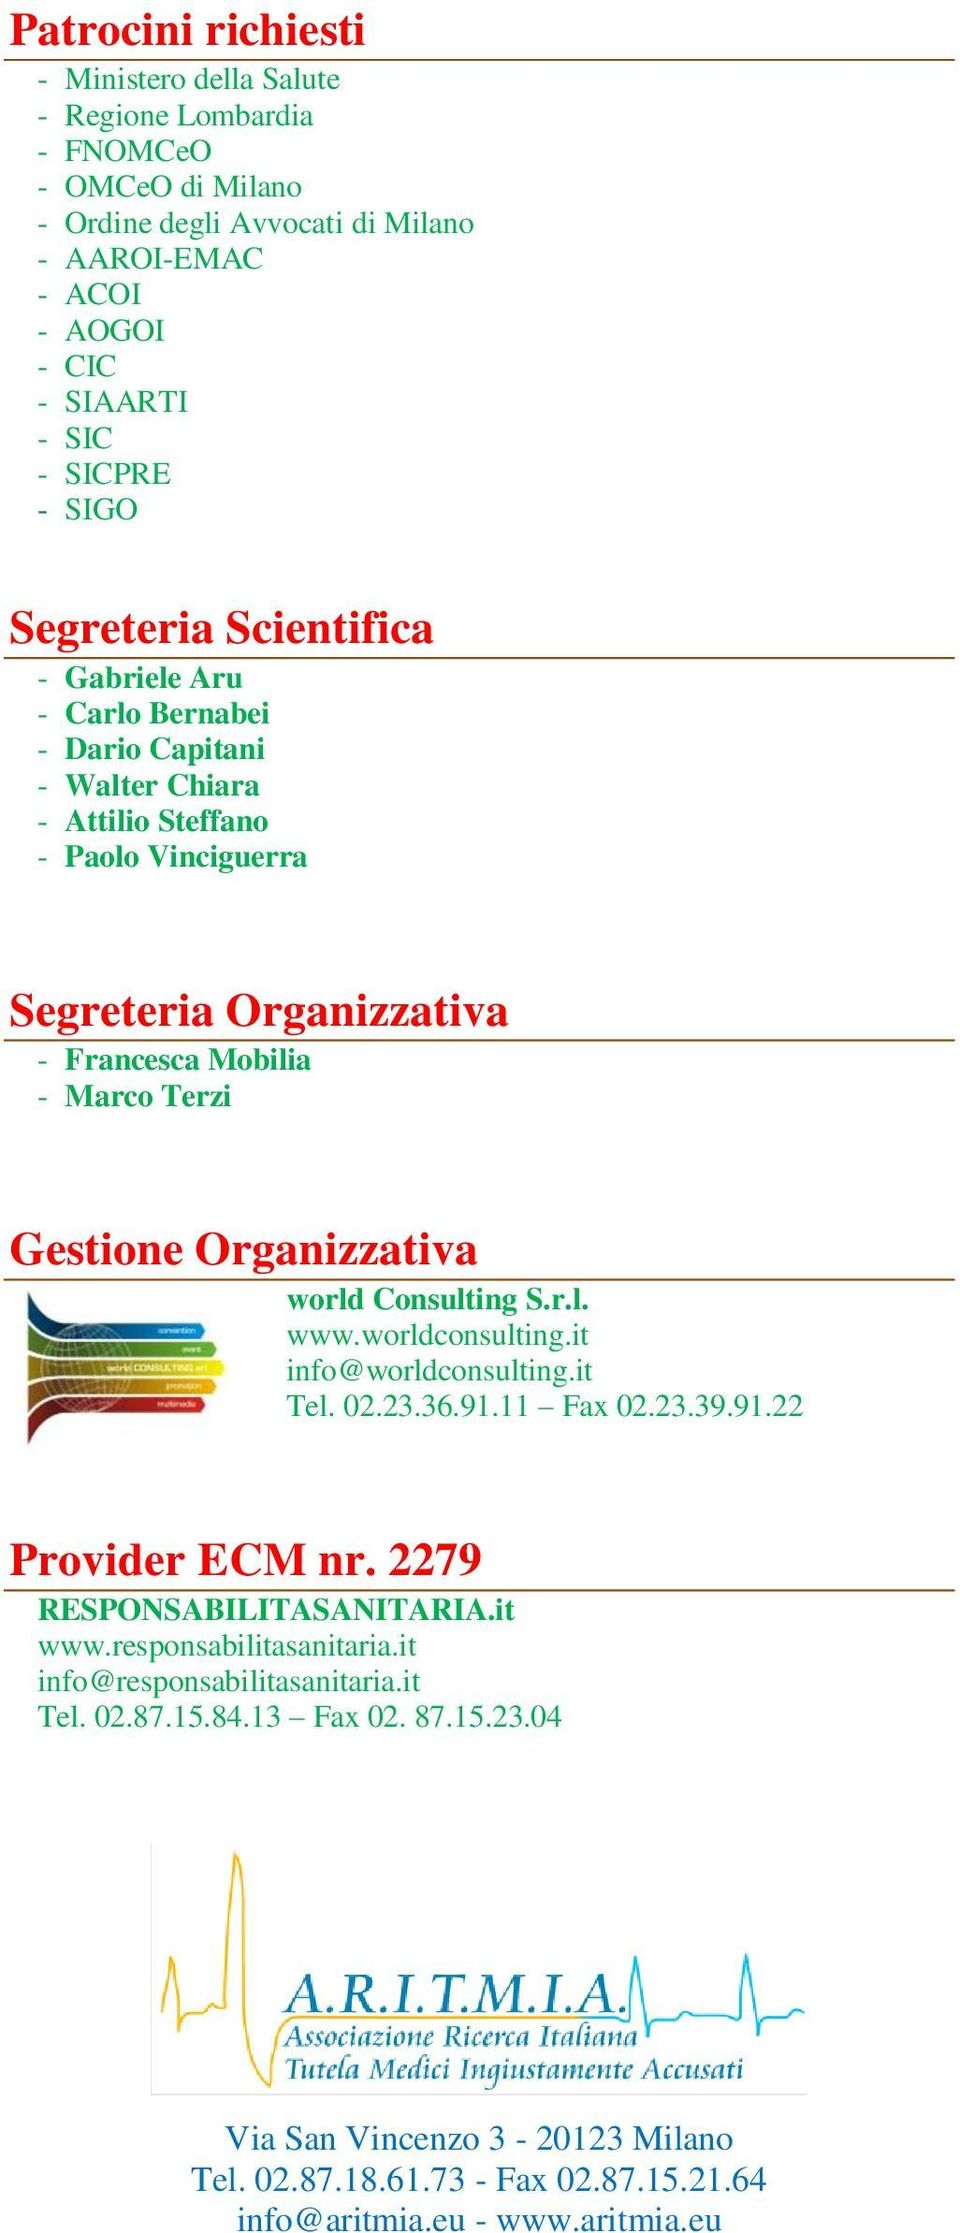 Gestione Organizzativa world Consulting S.r.l. www.worldconsulting.it info@worldconsulting.it Tel. 02.23.36.91.11 Fax 02.23.39.91.22 Provider ECM nr. 2279 RESPONSABILITASANITARIA.it www.